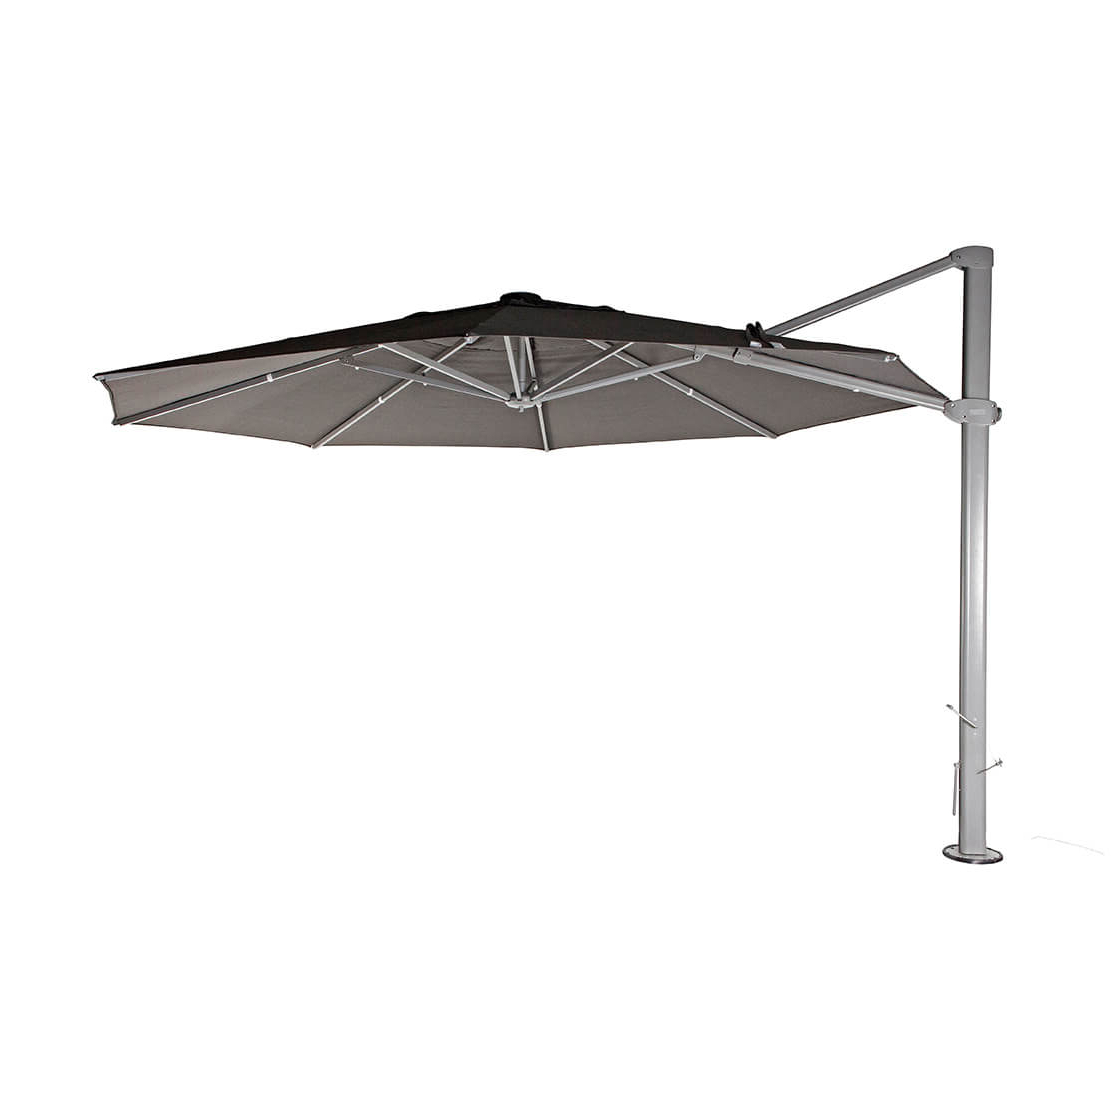 Trendy Shelta Asta 4Mx3M Rectangle Cantilever Umbrella Within Maidste Square Cantilever Umbrellas (View 15 of 20)